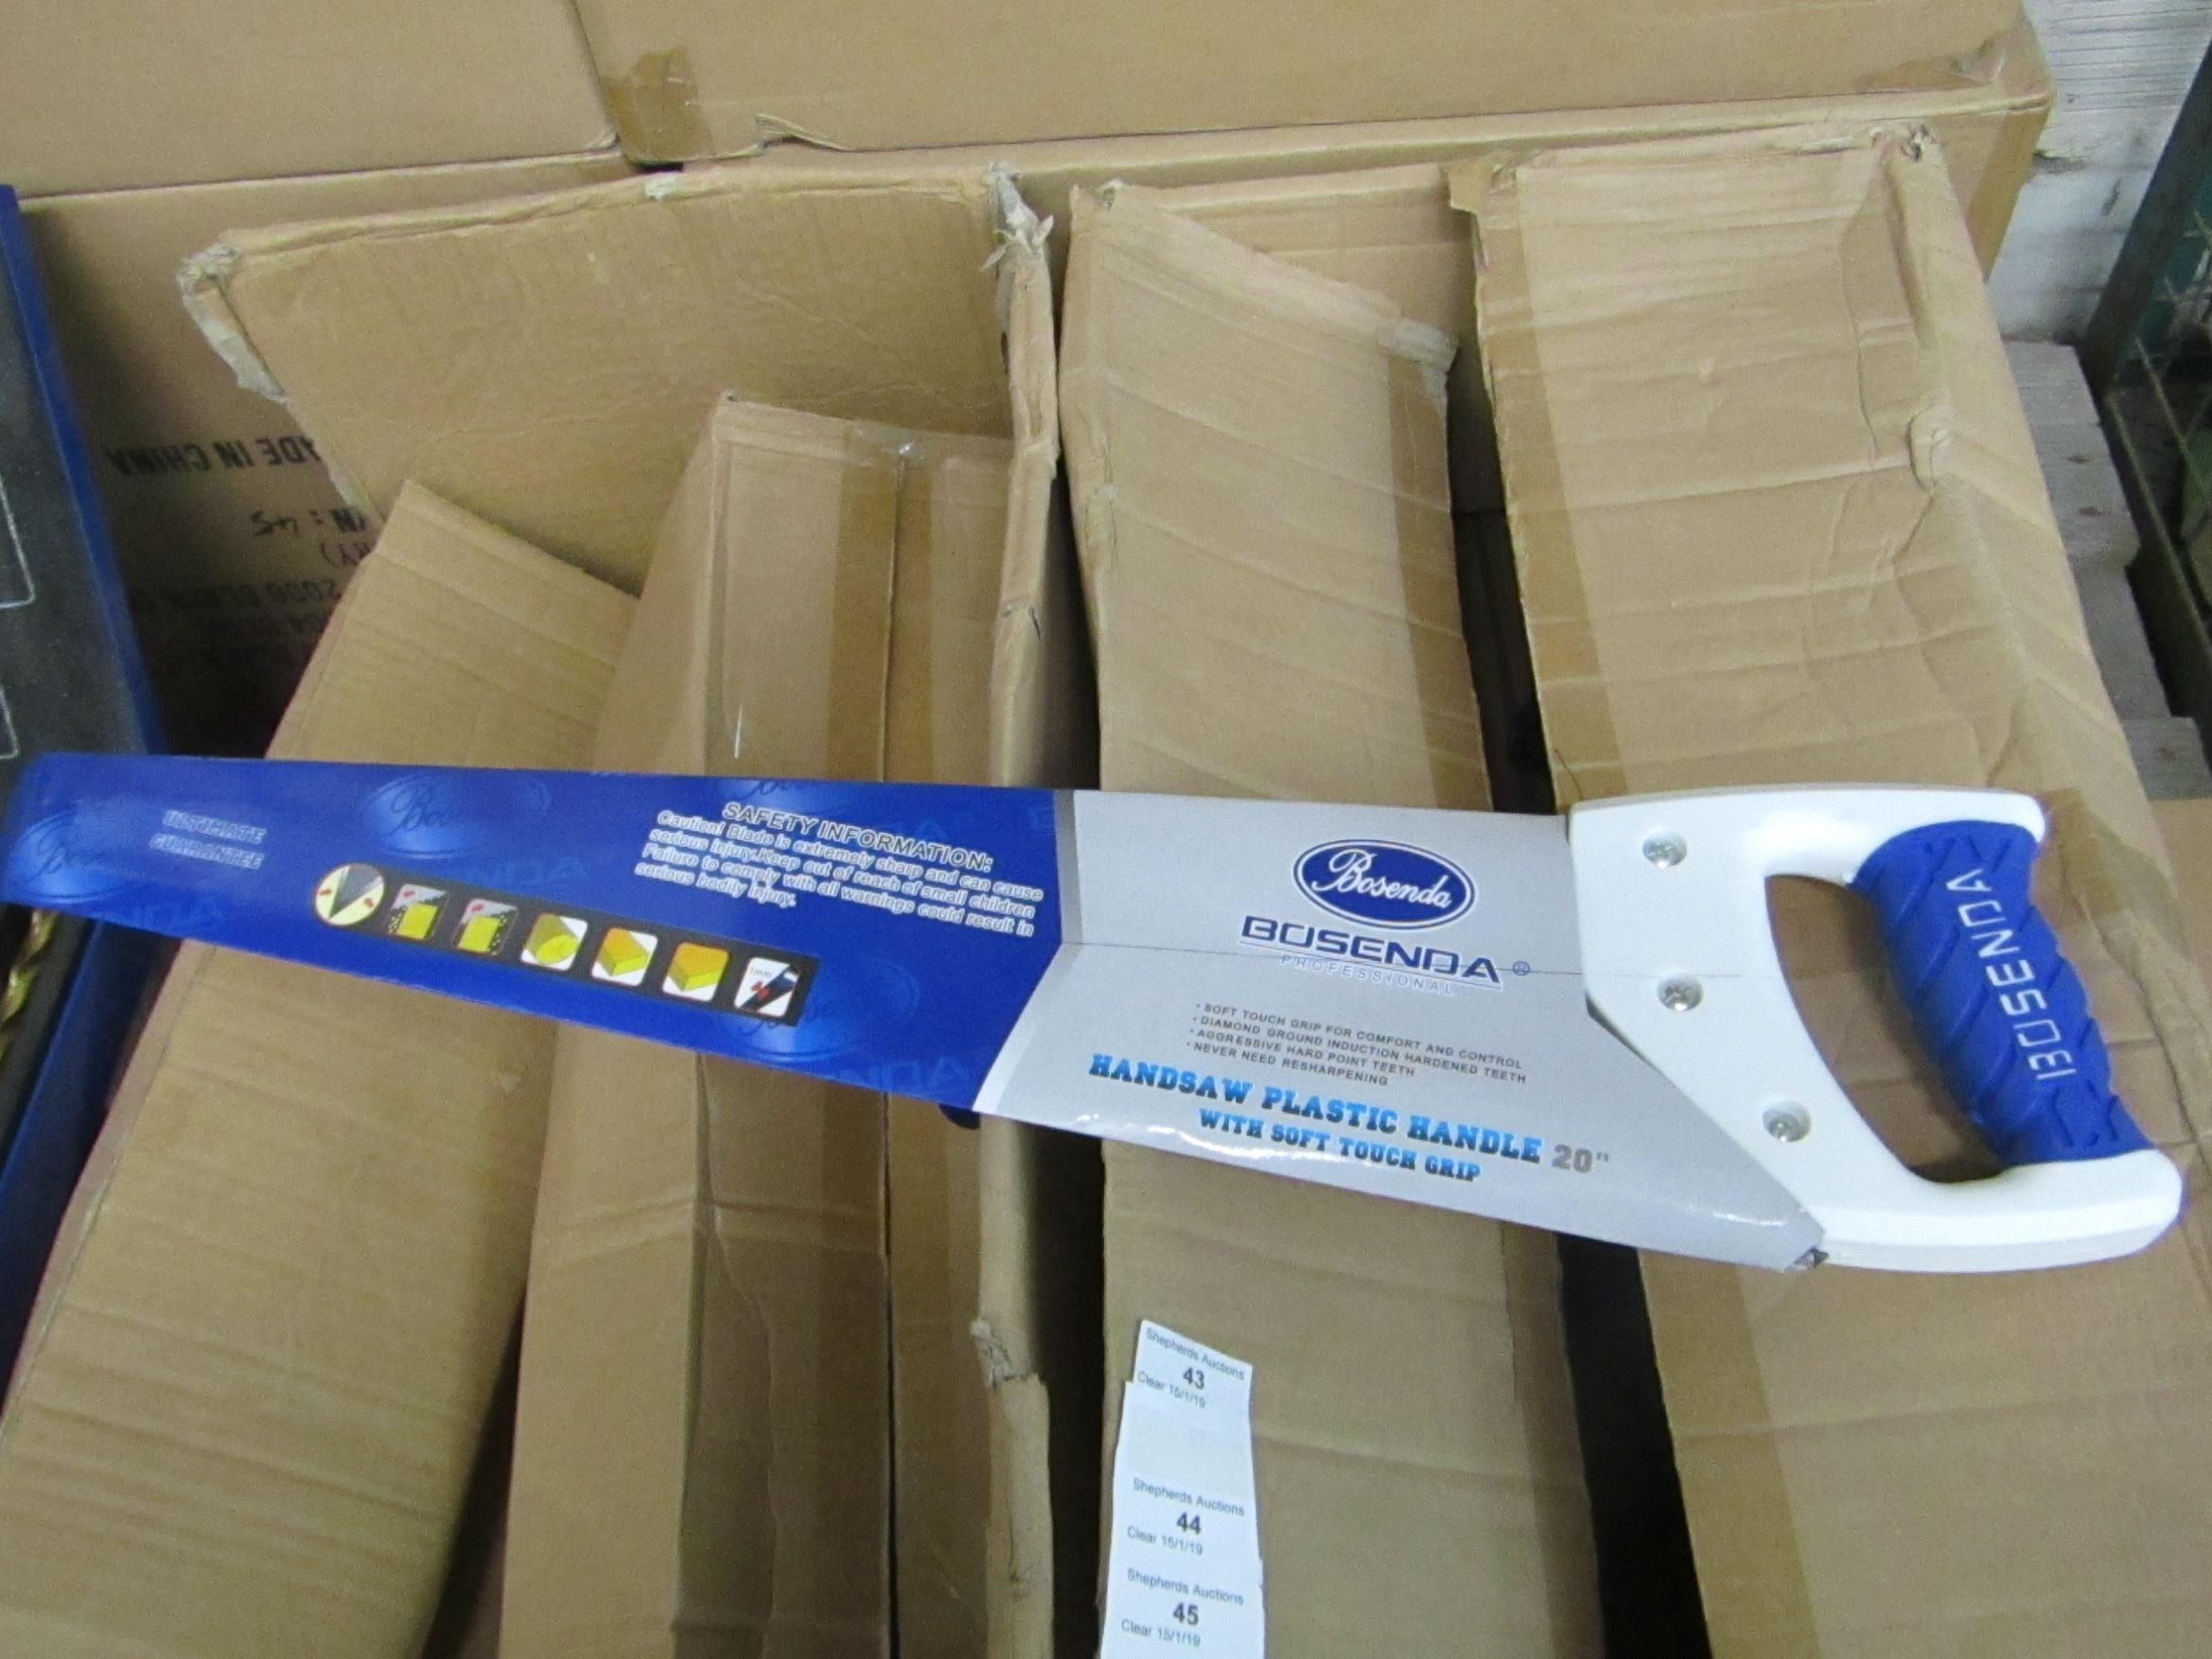 "Lot 50 - Bosenda Professional 20"" Hand saw with Soft touch grip handle, new."